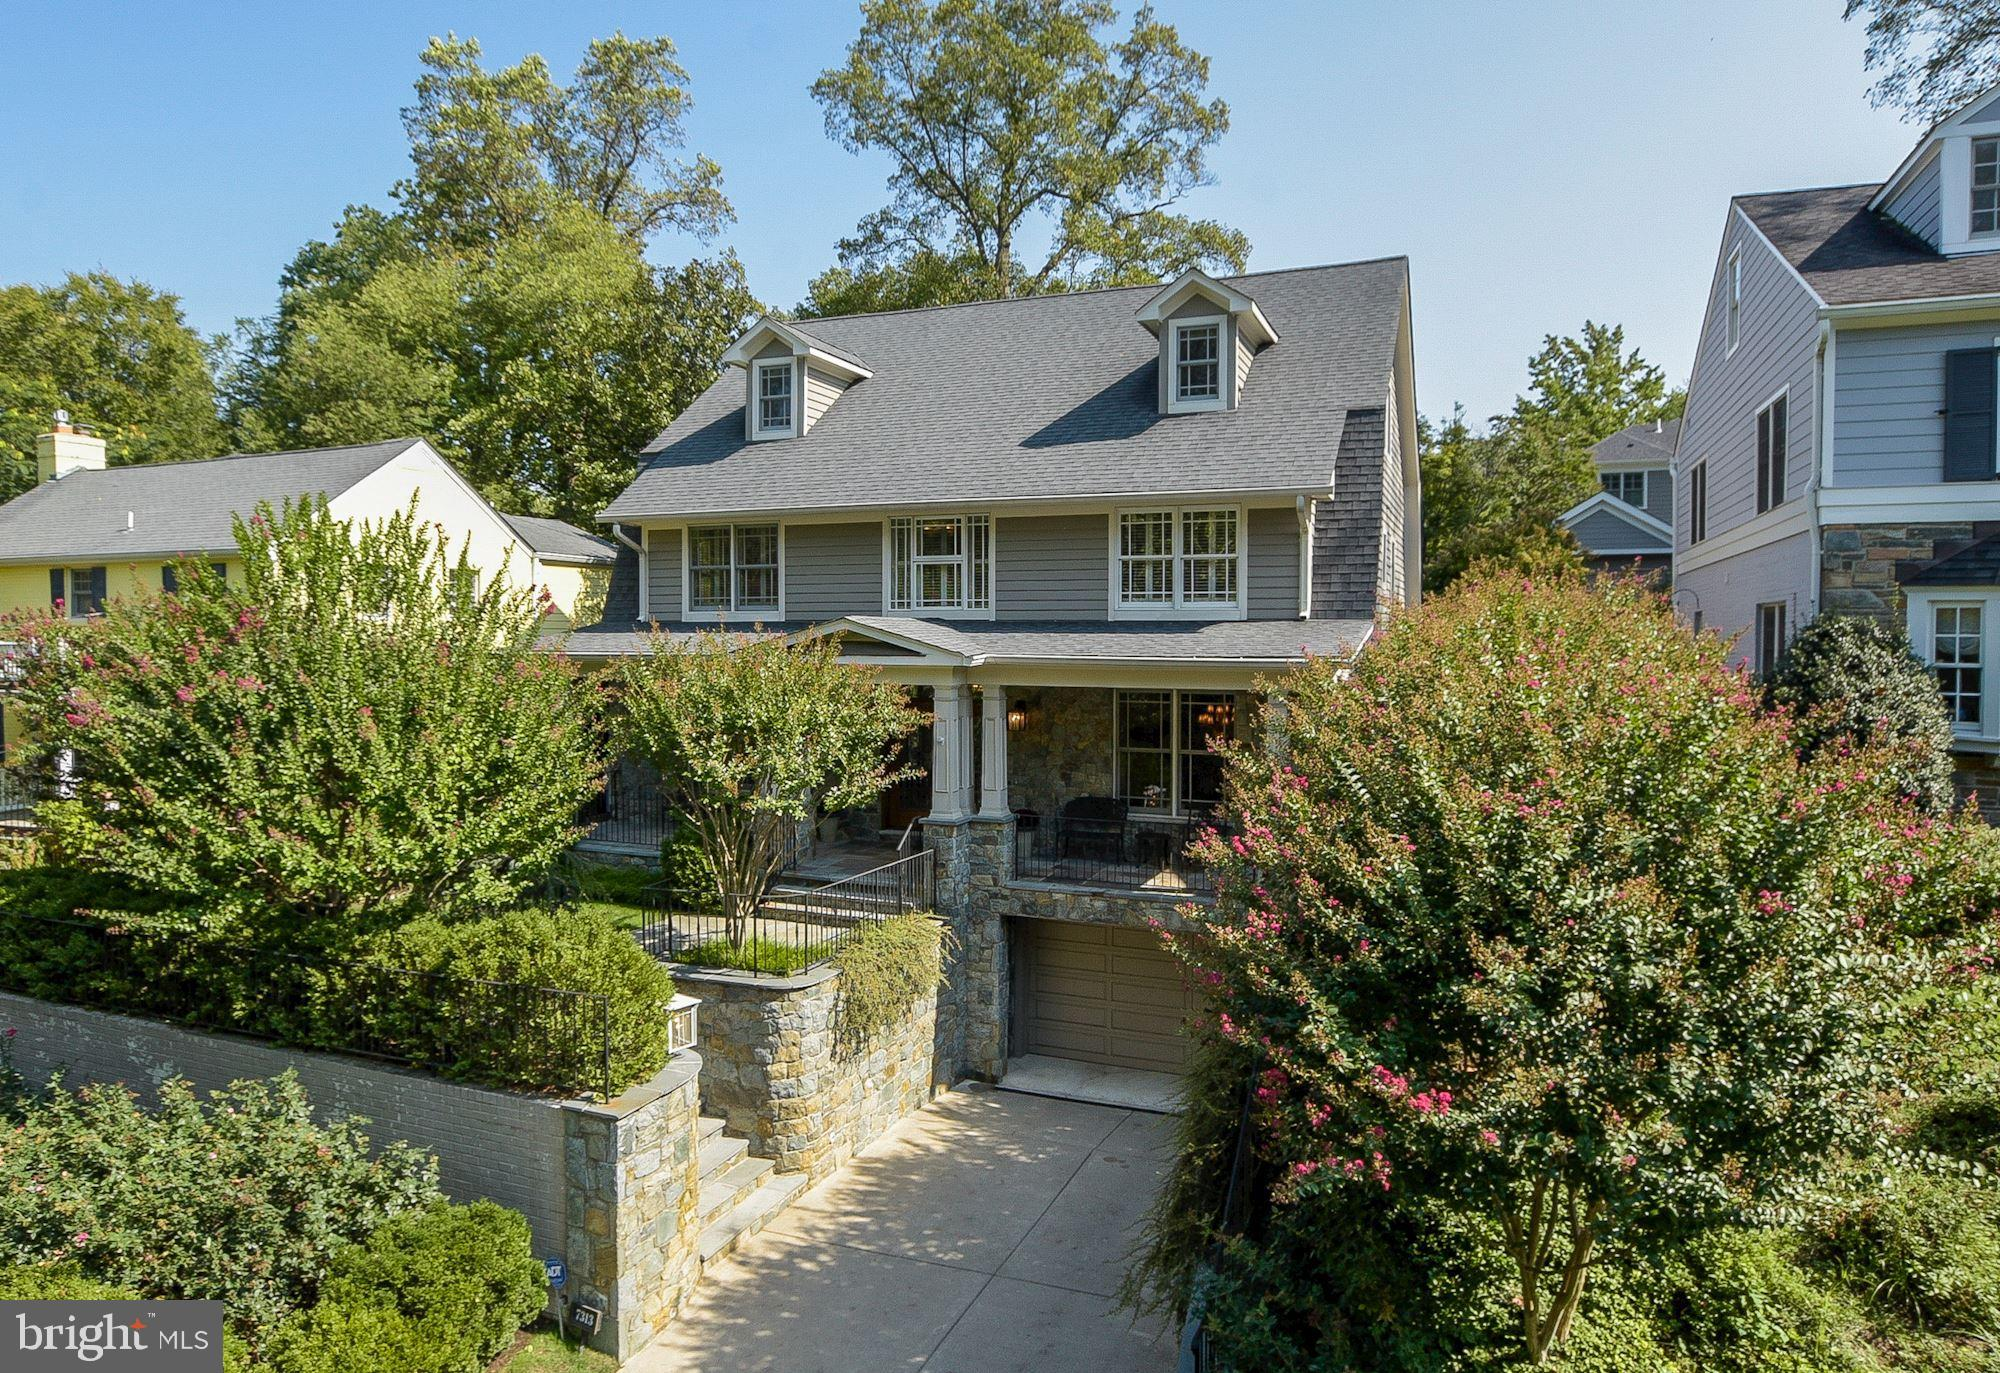 7313 MAPLE AVENUE, CHEVY CHASE, MD 20815